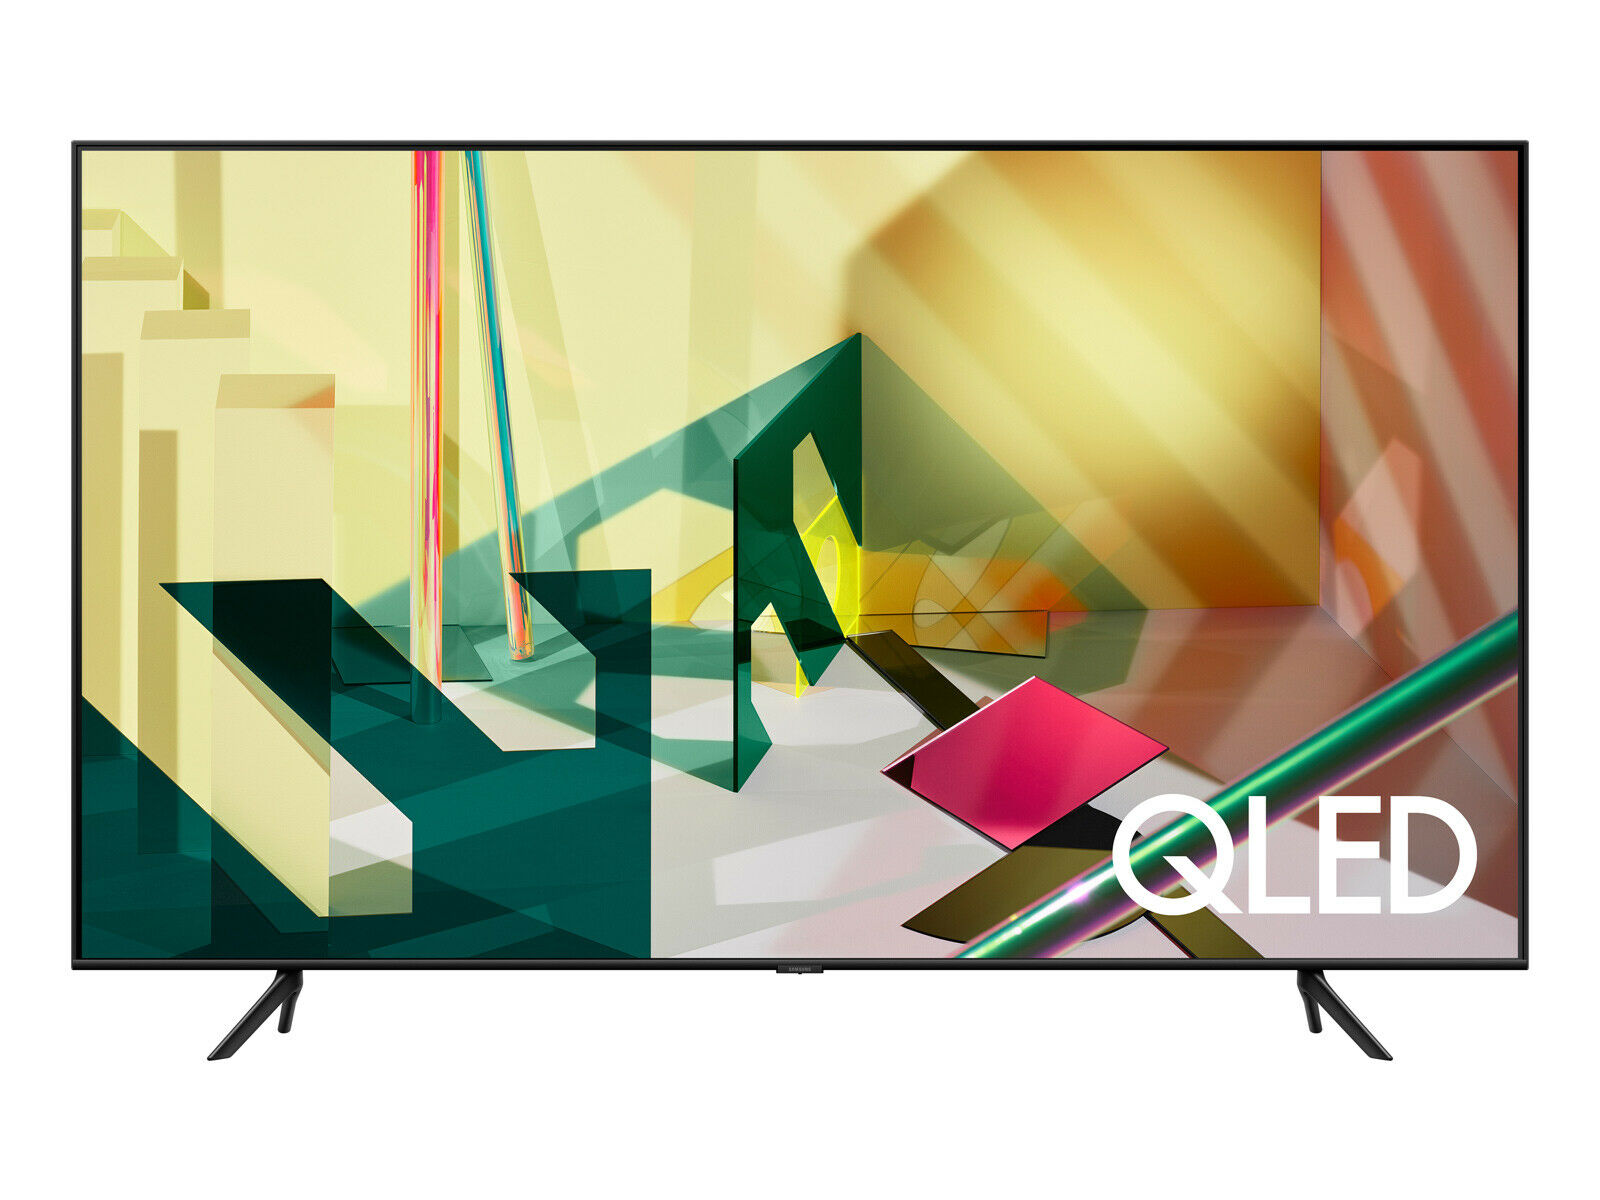 Samsung Q70T 65 4K Ultra HD HDR Smart QLED TV - 2020 Model *QN65Q70T. Available Now for 1036.60